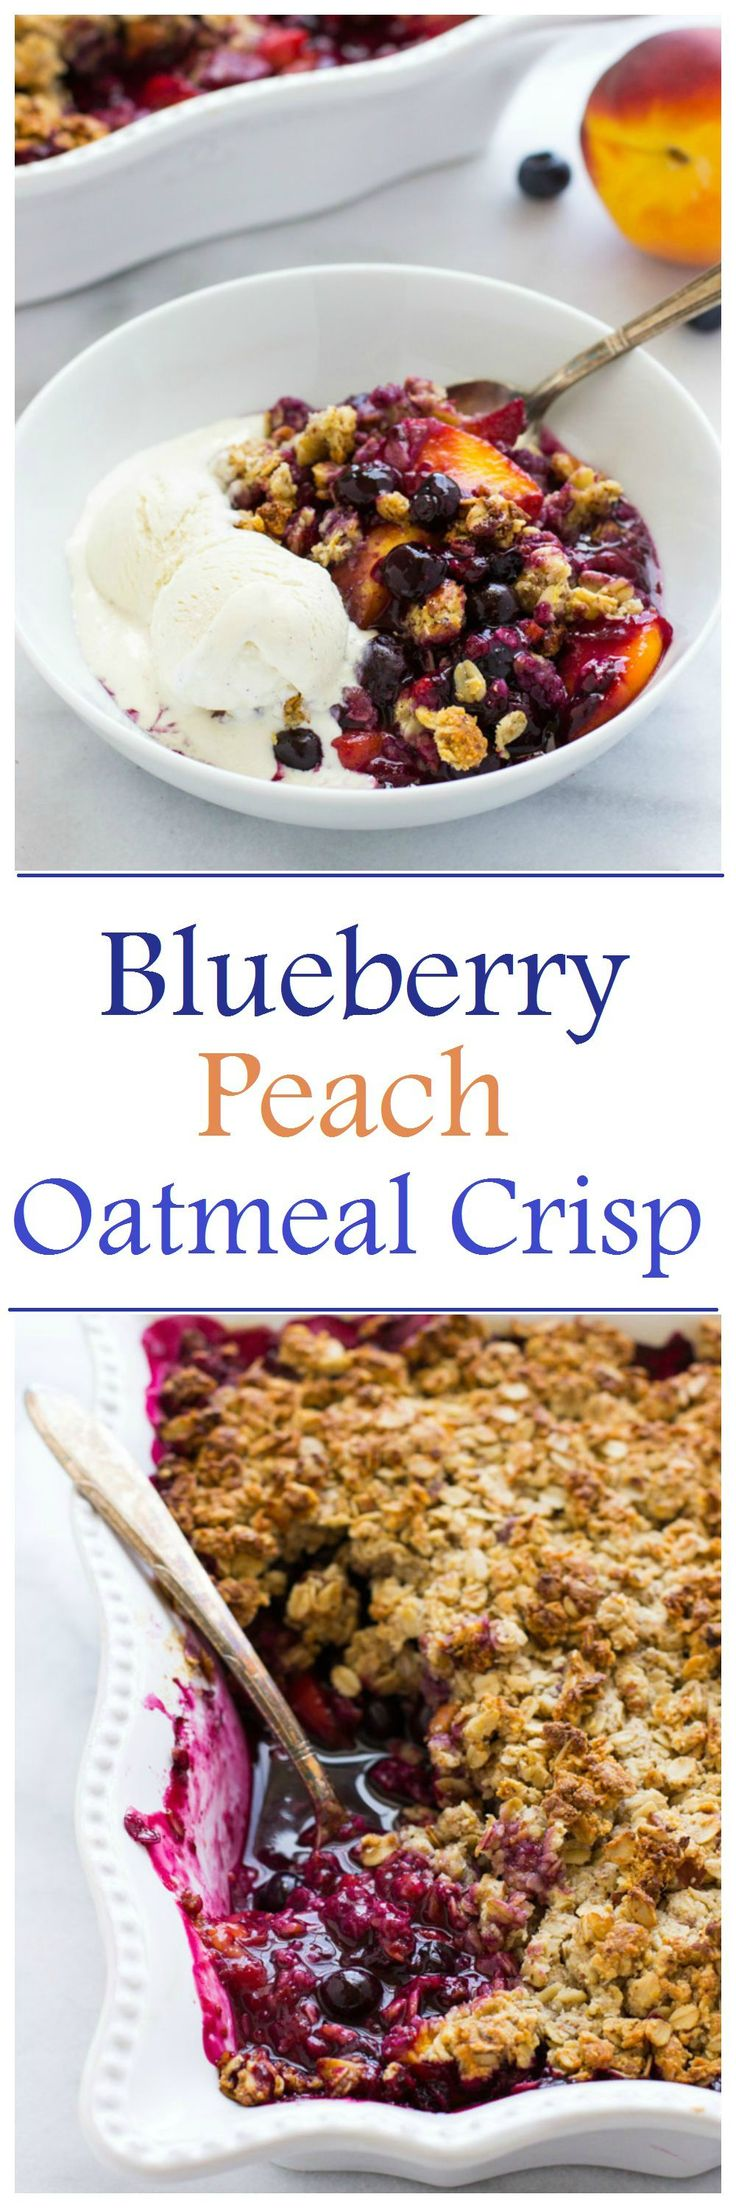 Blueberry Peach Oatmeal Crisp- serve with vanilla bean ice cream for the best summer dessert EVER! #glutenfree #refinedsugarfree